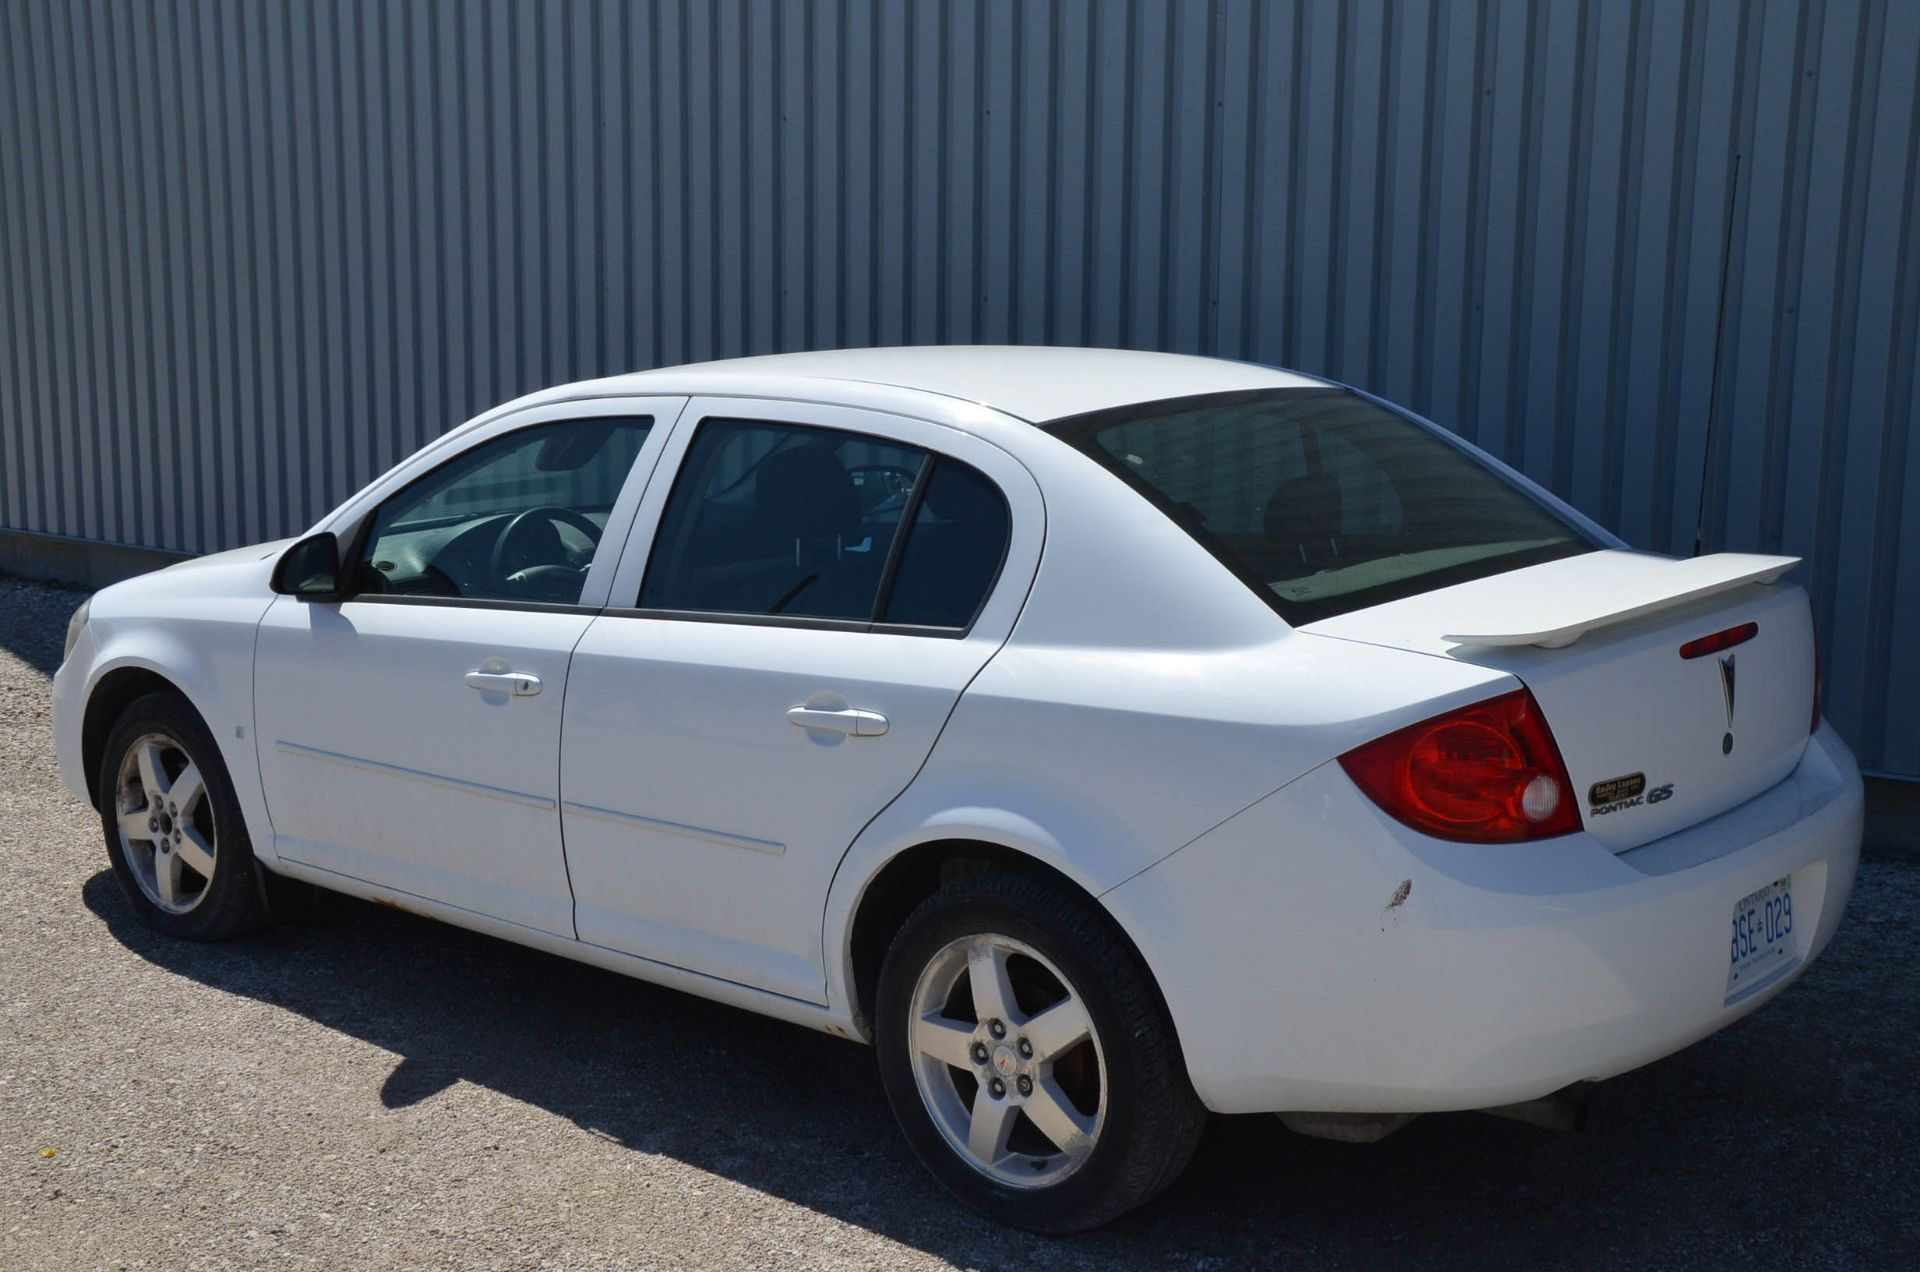 PONTIAC (2008) G5 4-DOOR SEDAN, AUTO, APPROX. 192,000 KM (RECORDED ON METER AT THE TIME OF LISTING), - Image 3 of 9